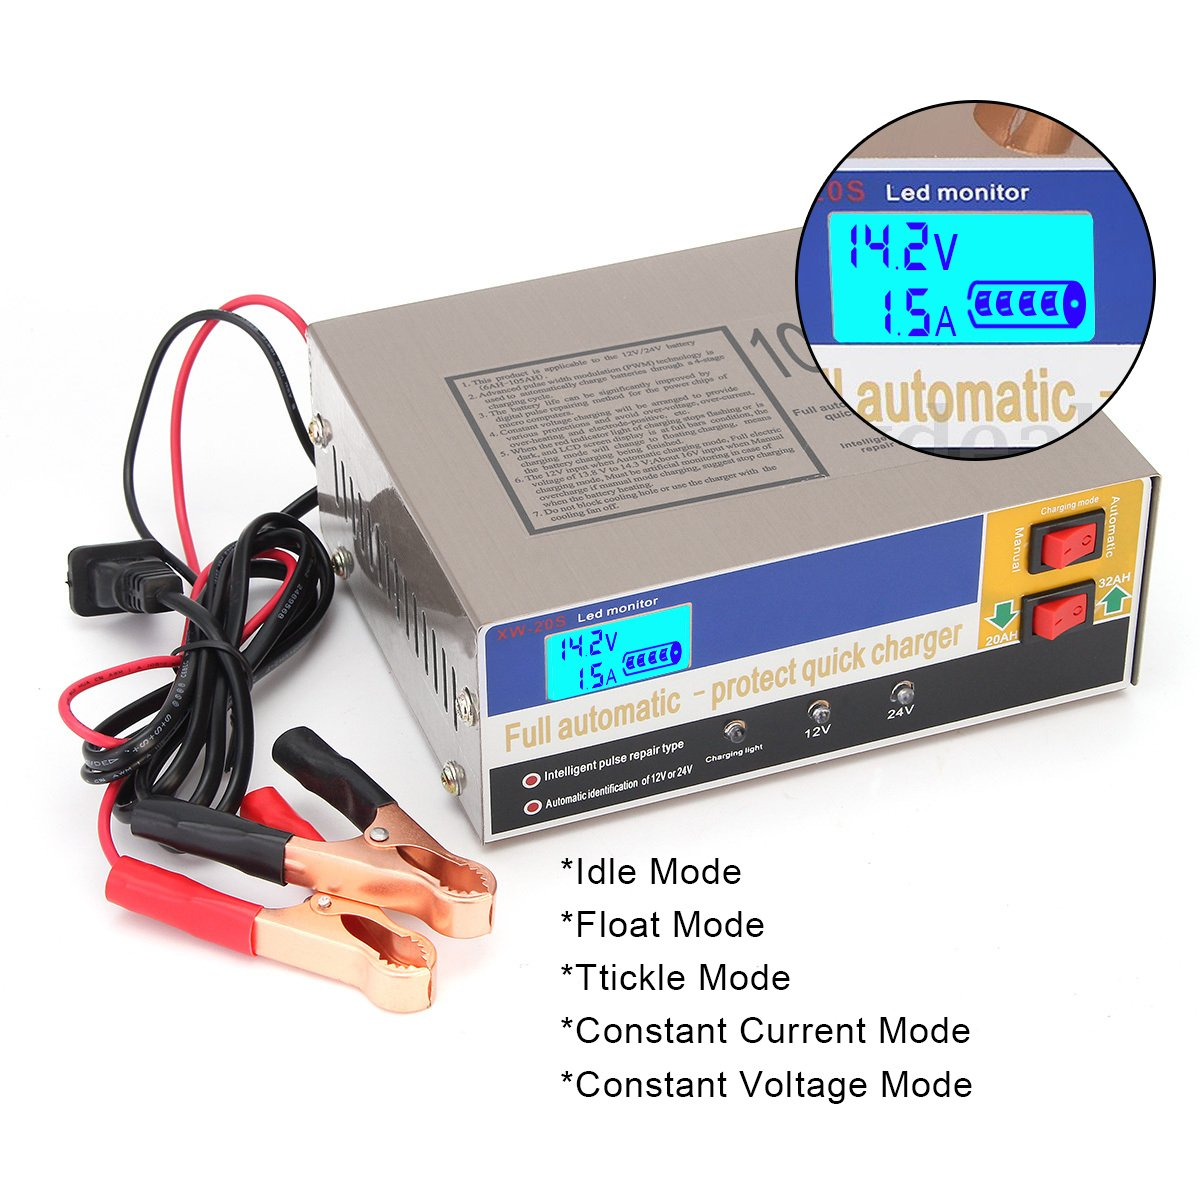 Wisamic 12v 24v 100ah Automatic Electric Car Battery 6v Charger Maintainer 750ma Lead Acid Intelligent Pulse Repair Type Automotive